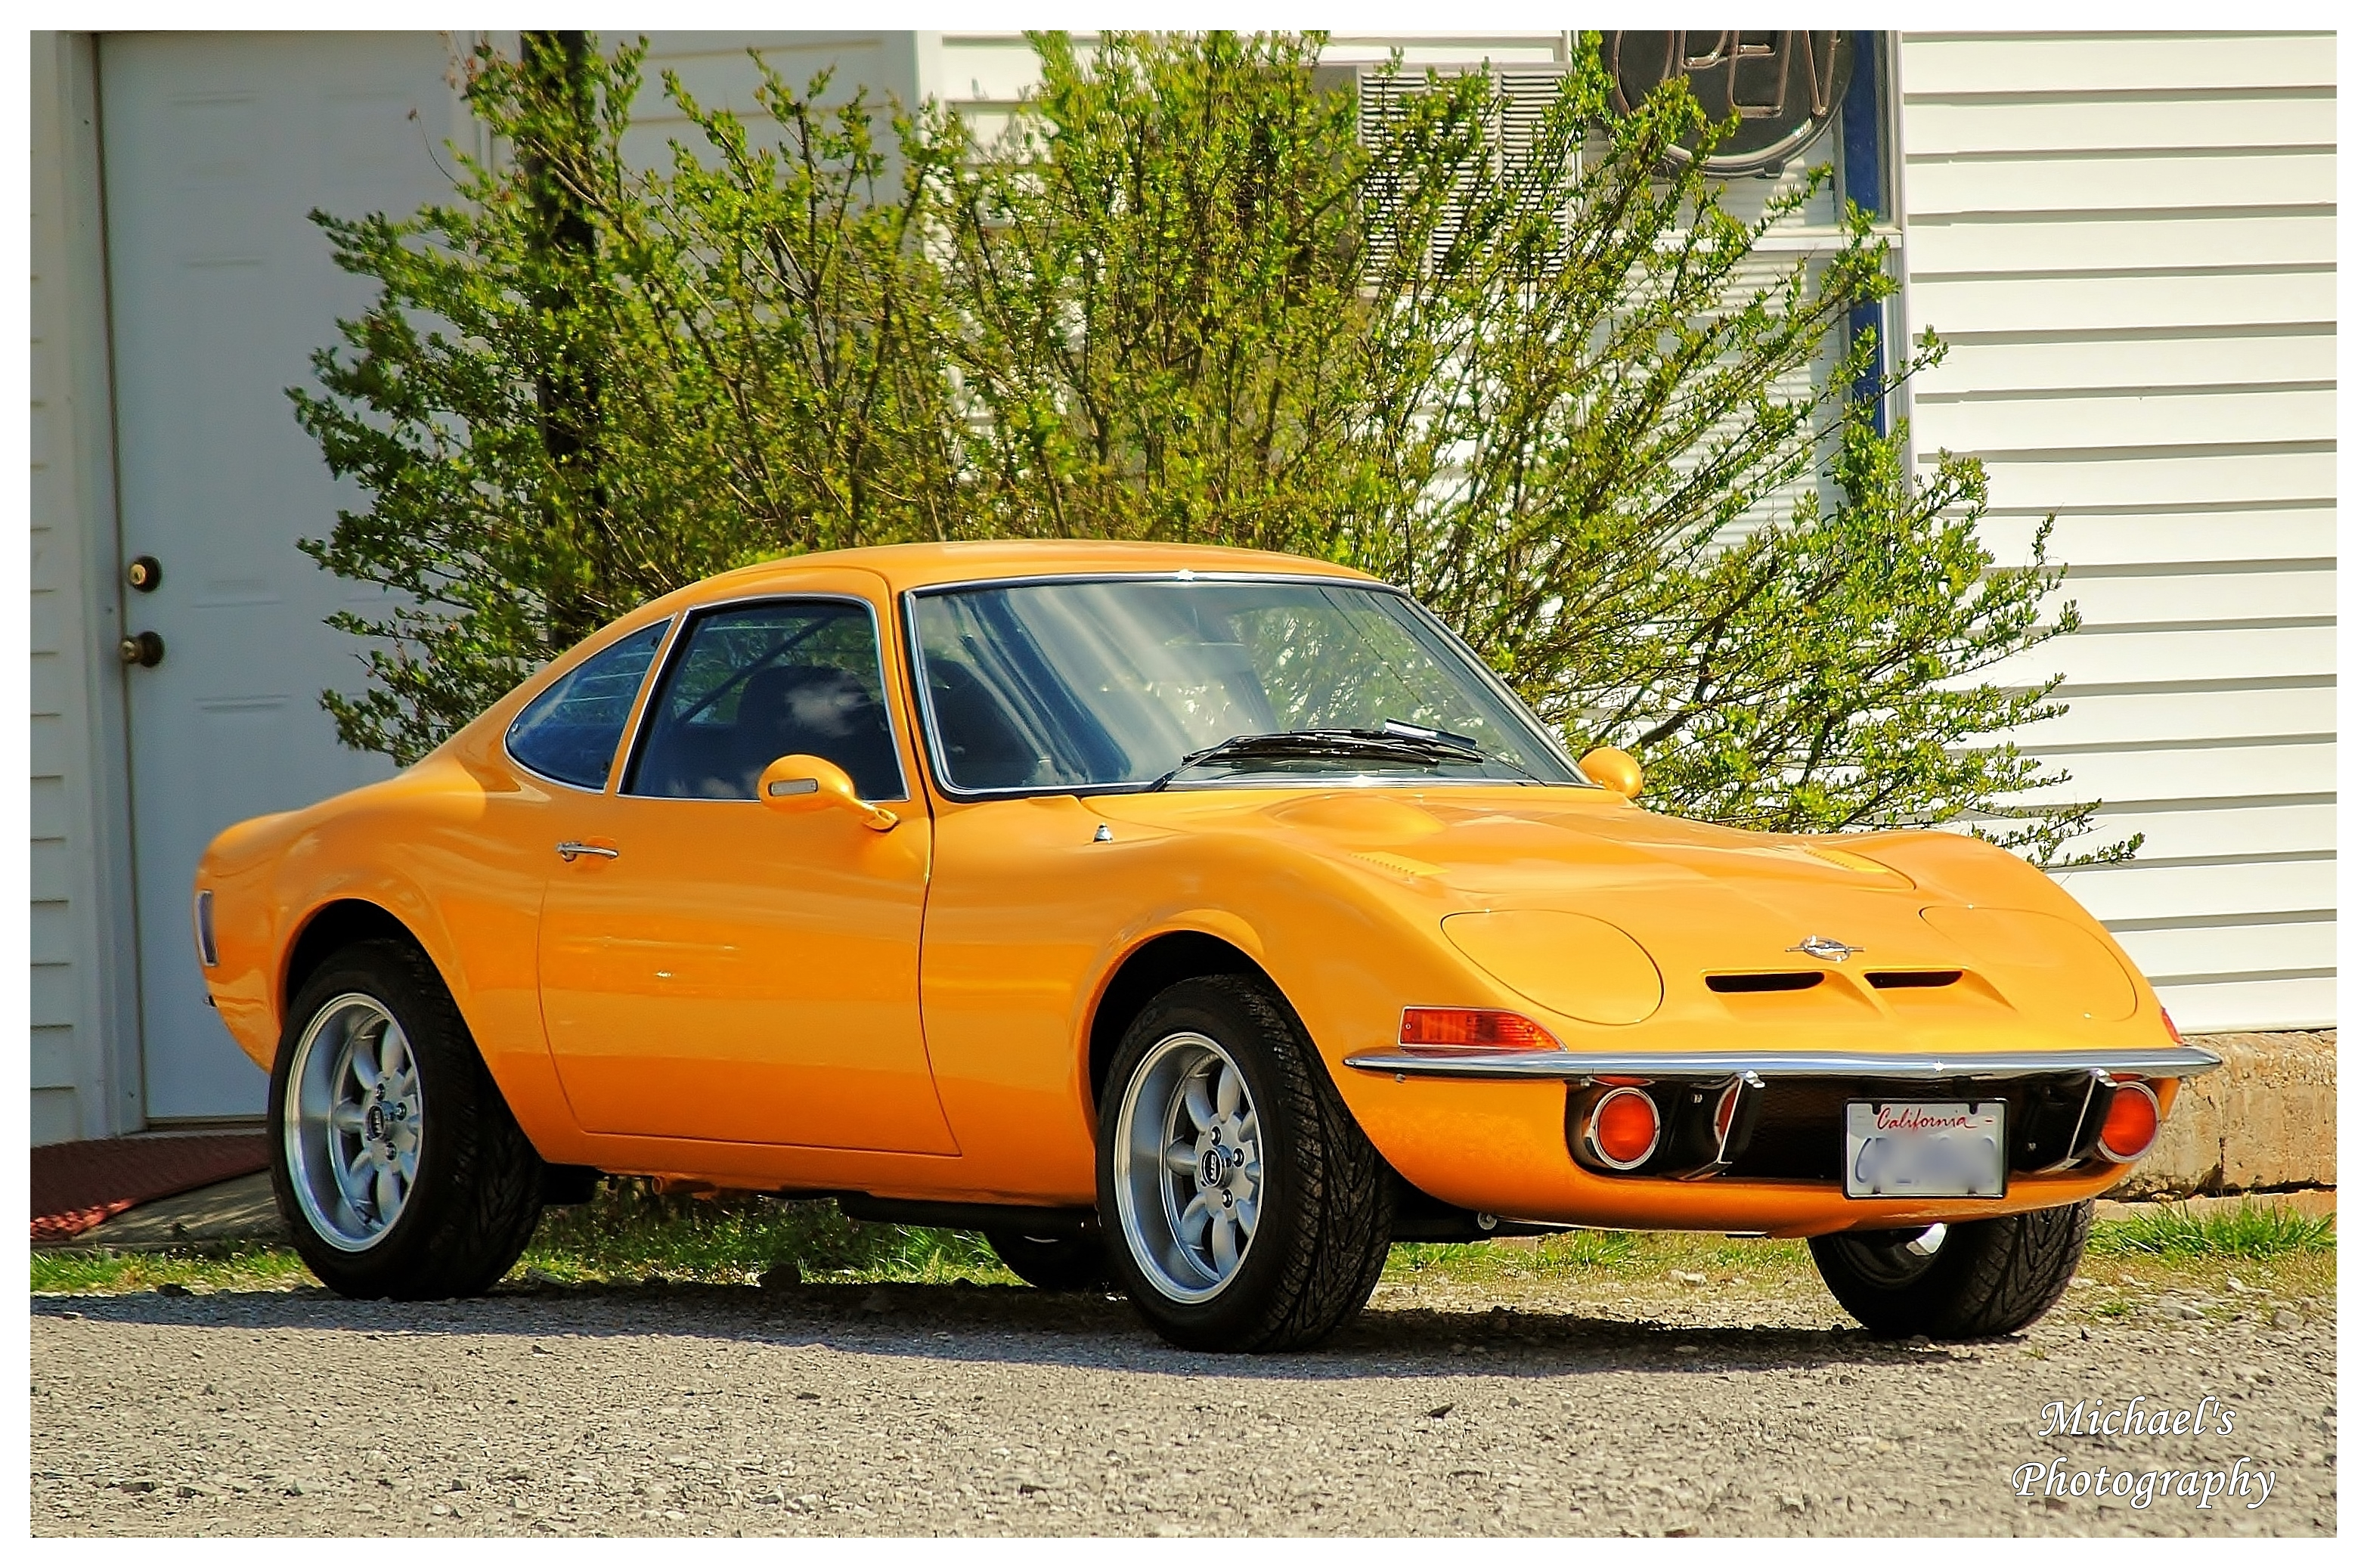 1000 images about opel gt on pinterest bijoux vehicles and i am legend. Black Bedroom Furniture Sets. Home Design Ideas